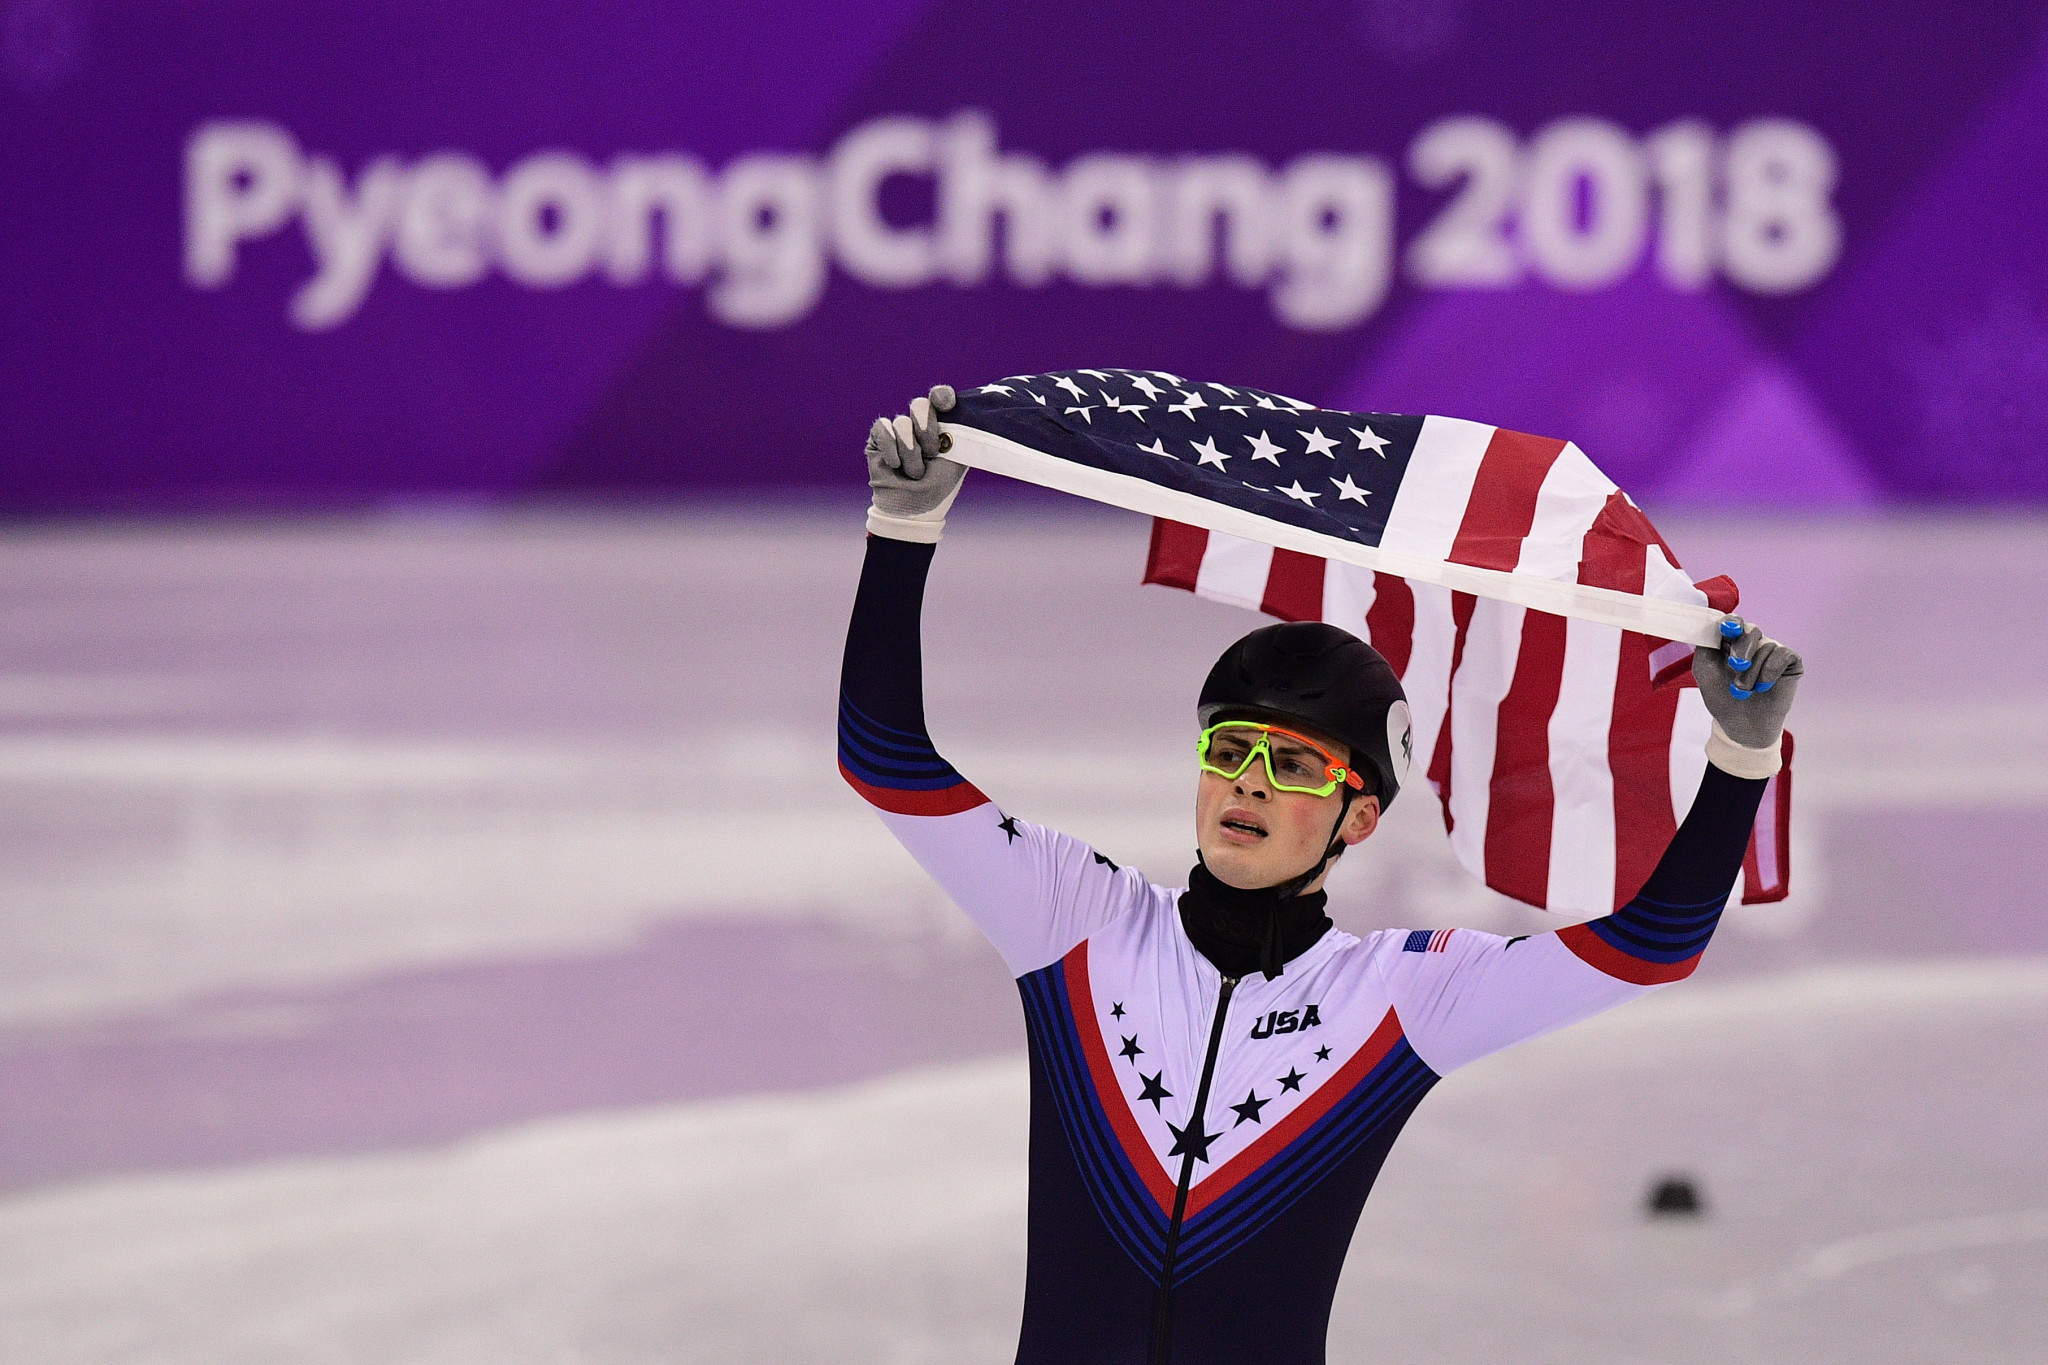 John-Henry Krueger claimed the United States only short track speed skating medal at Pyeongchang 2018 ©Getty Images